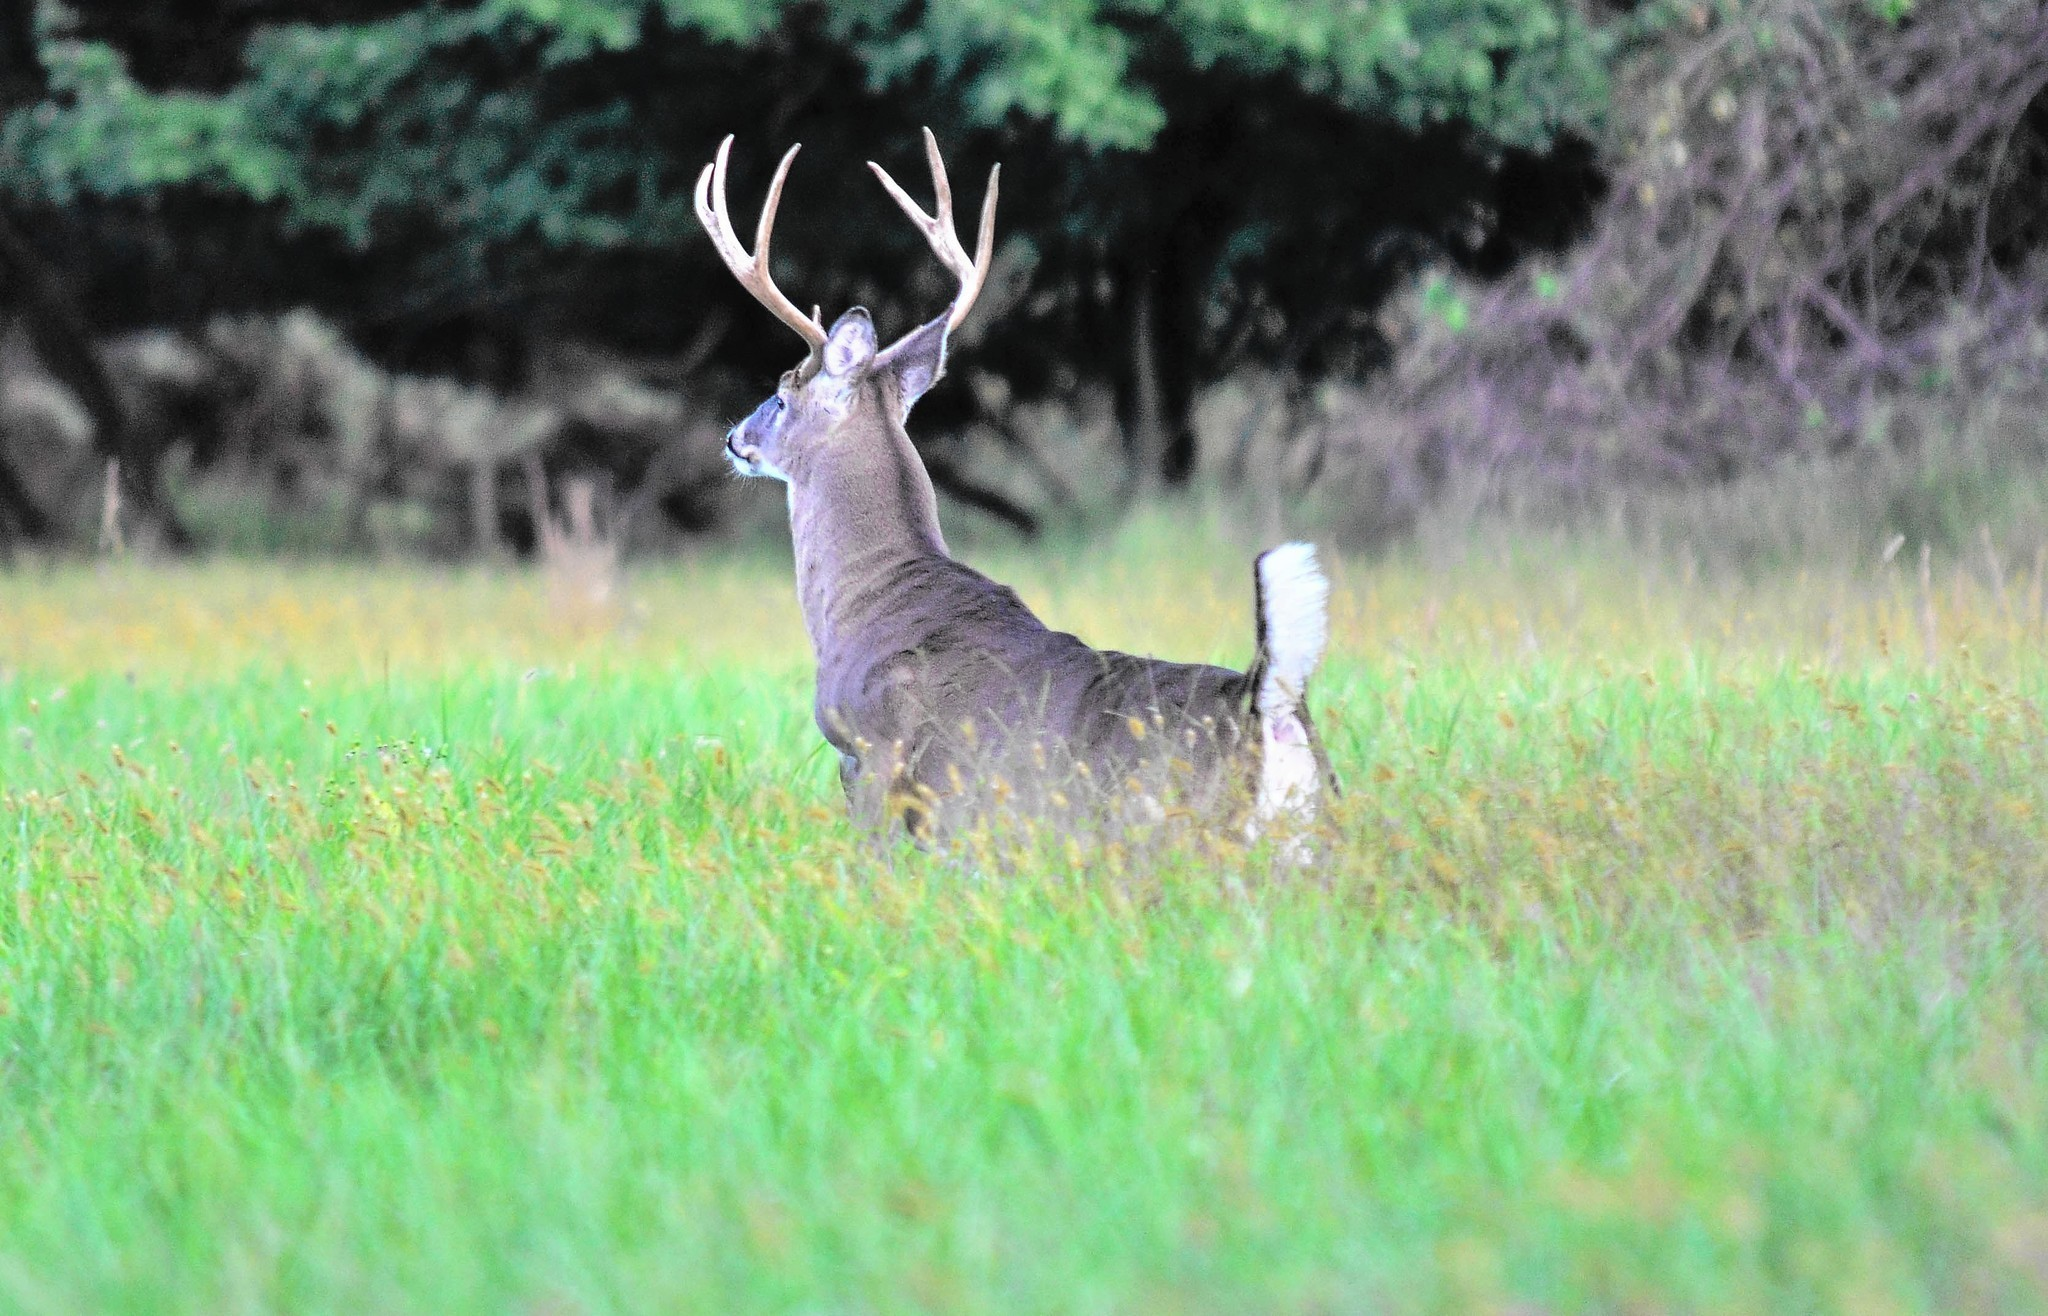 What Can I Feed Deer In My Backyard feeding deer corn in the winter - carroll county times